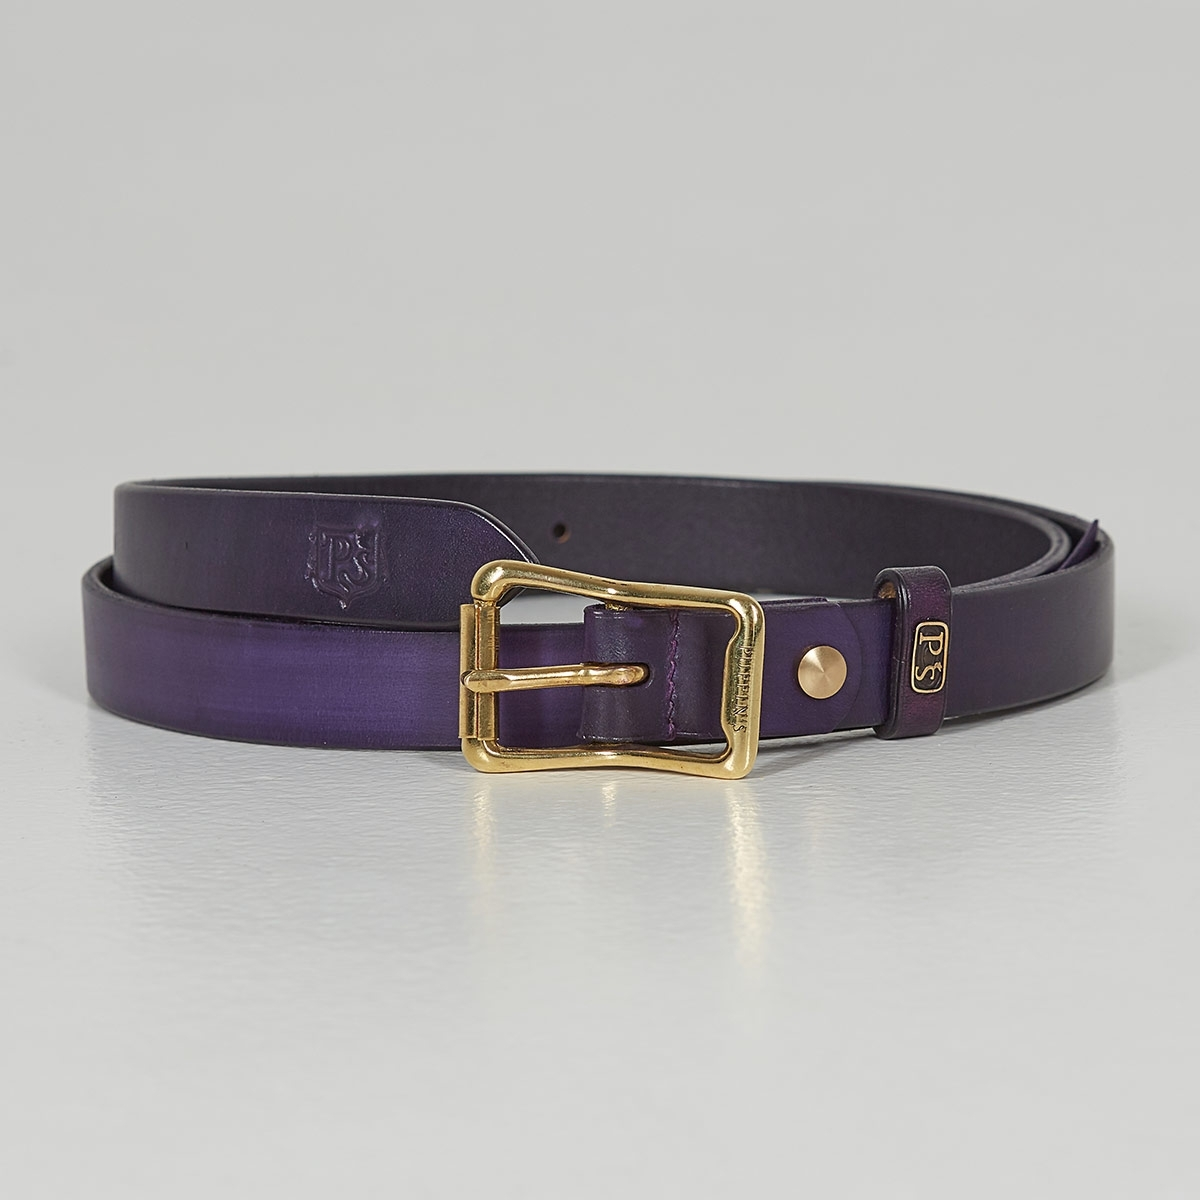 Luxury narrow belt 25mm with patina violet ink